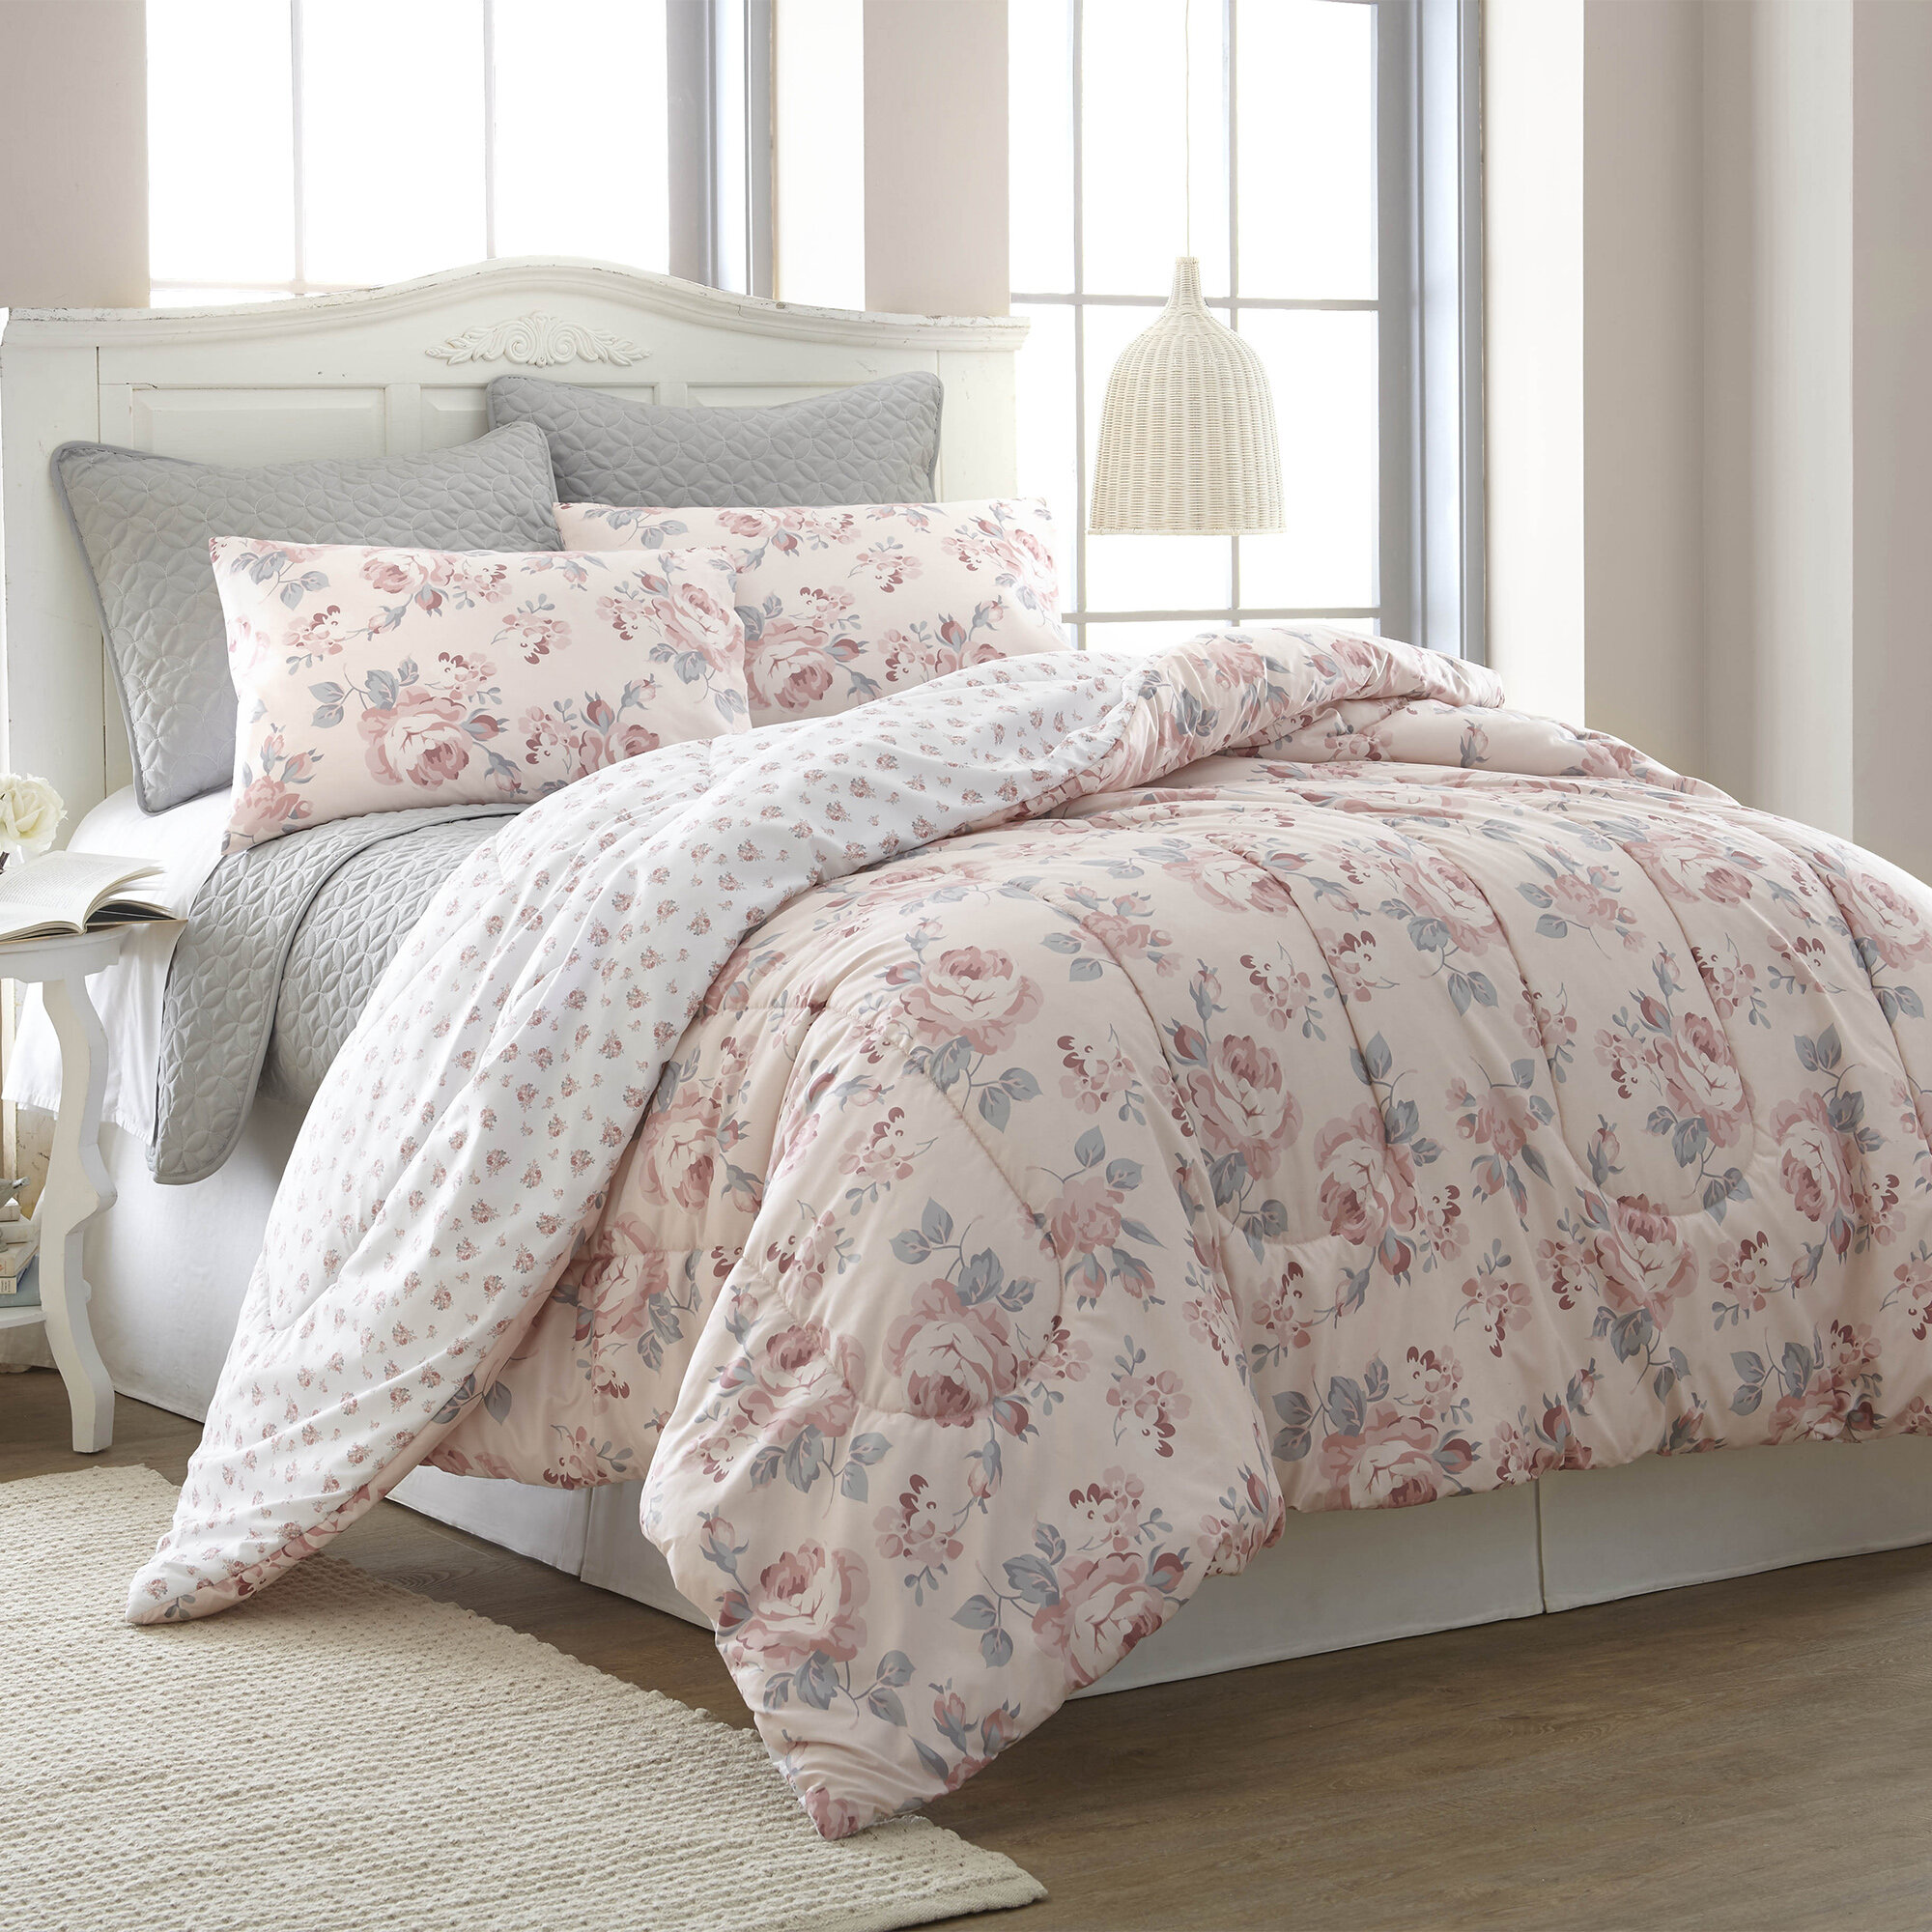 kg dusty com set reversible zeta comforter home rose c ensembles jones qvc sets bedding n jacquard floral the casa for bed